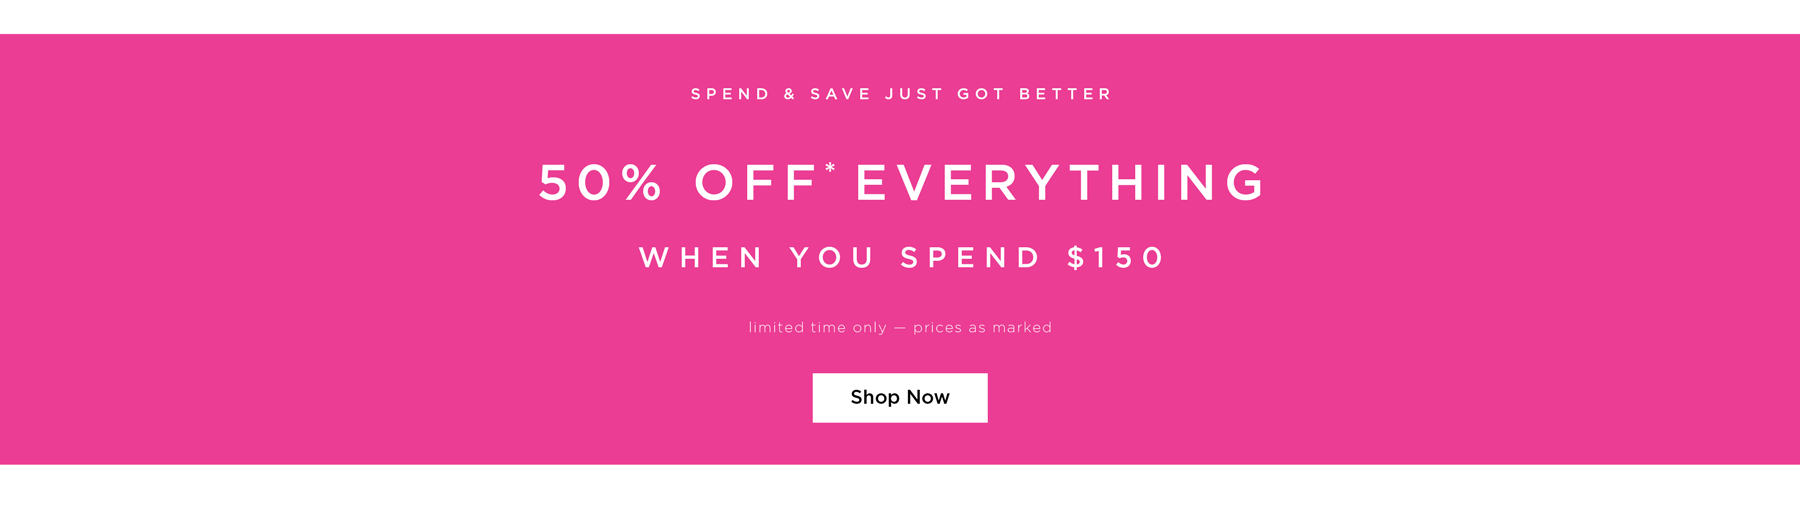 Spend & Save Just Got Better. 50% Off* Everything when you spend $150. Limited time only - prices as marked. Shop Now.